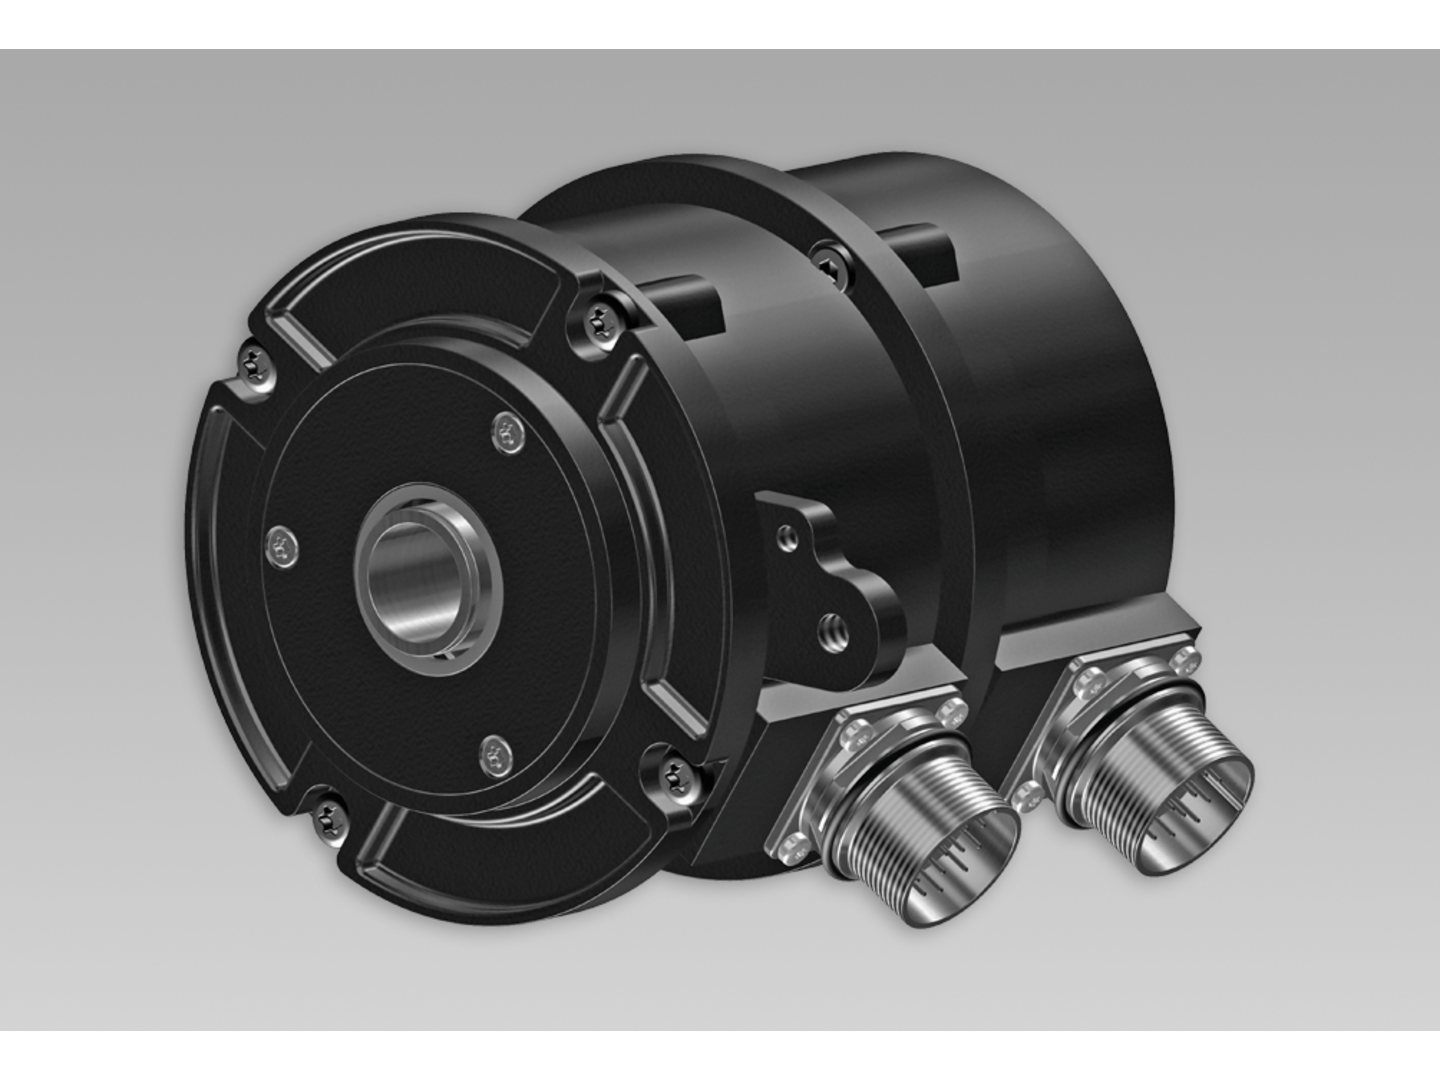 HeavyDuty absolute encoders combination